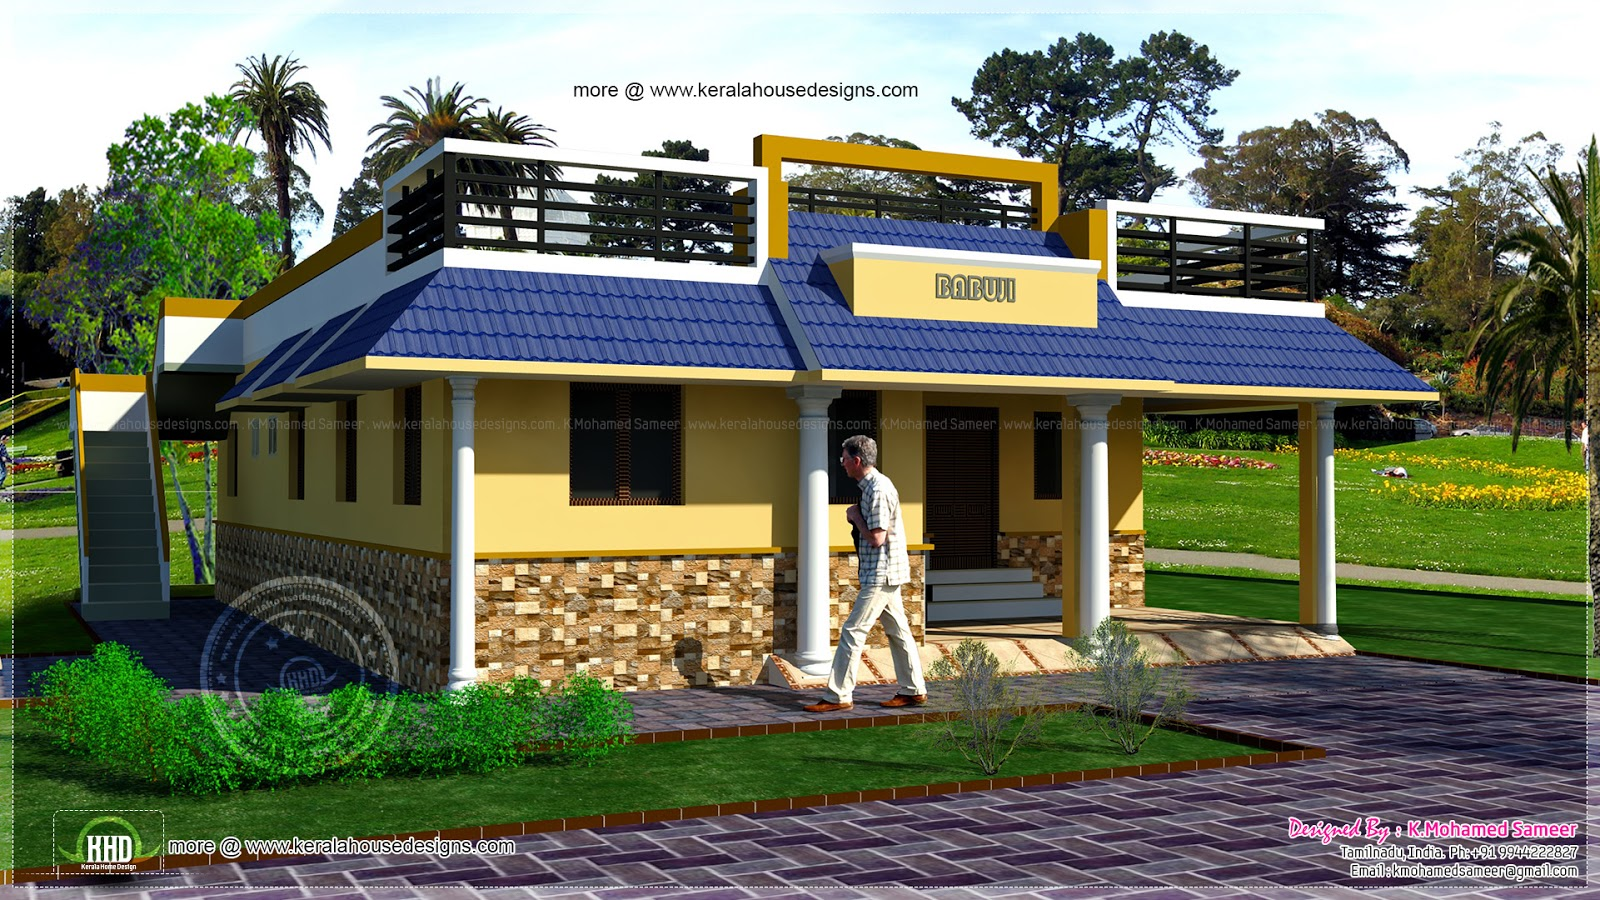 3 bedroom single floor house plan kerala home design and for Kerala home style 3 bedroom